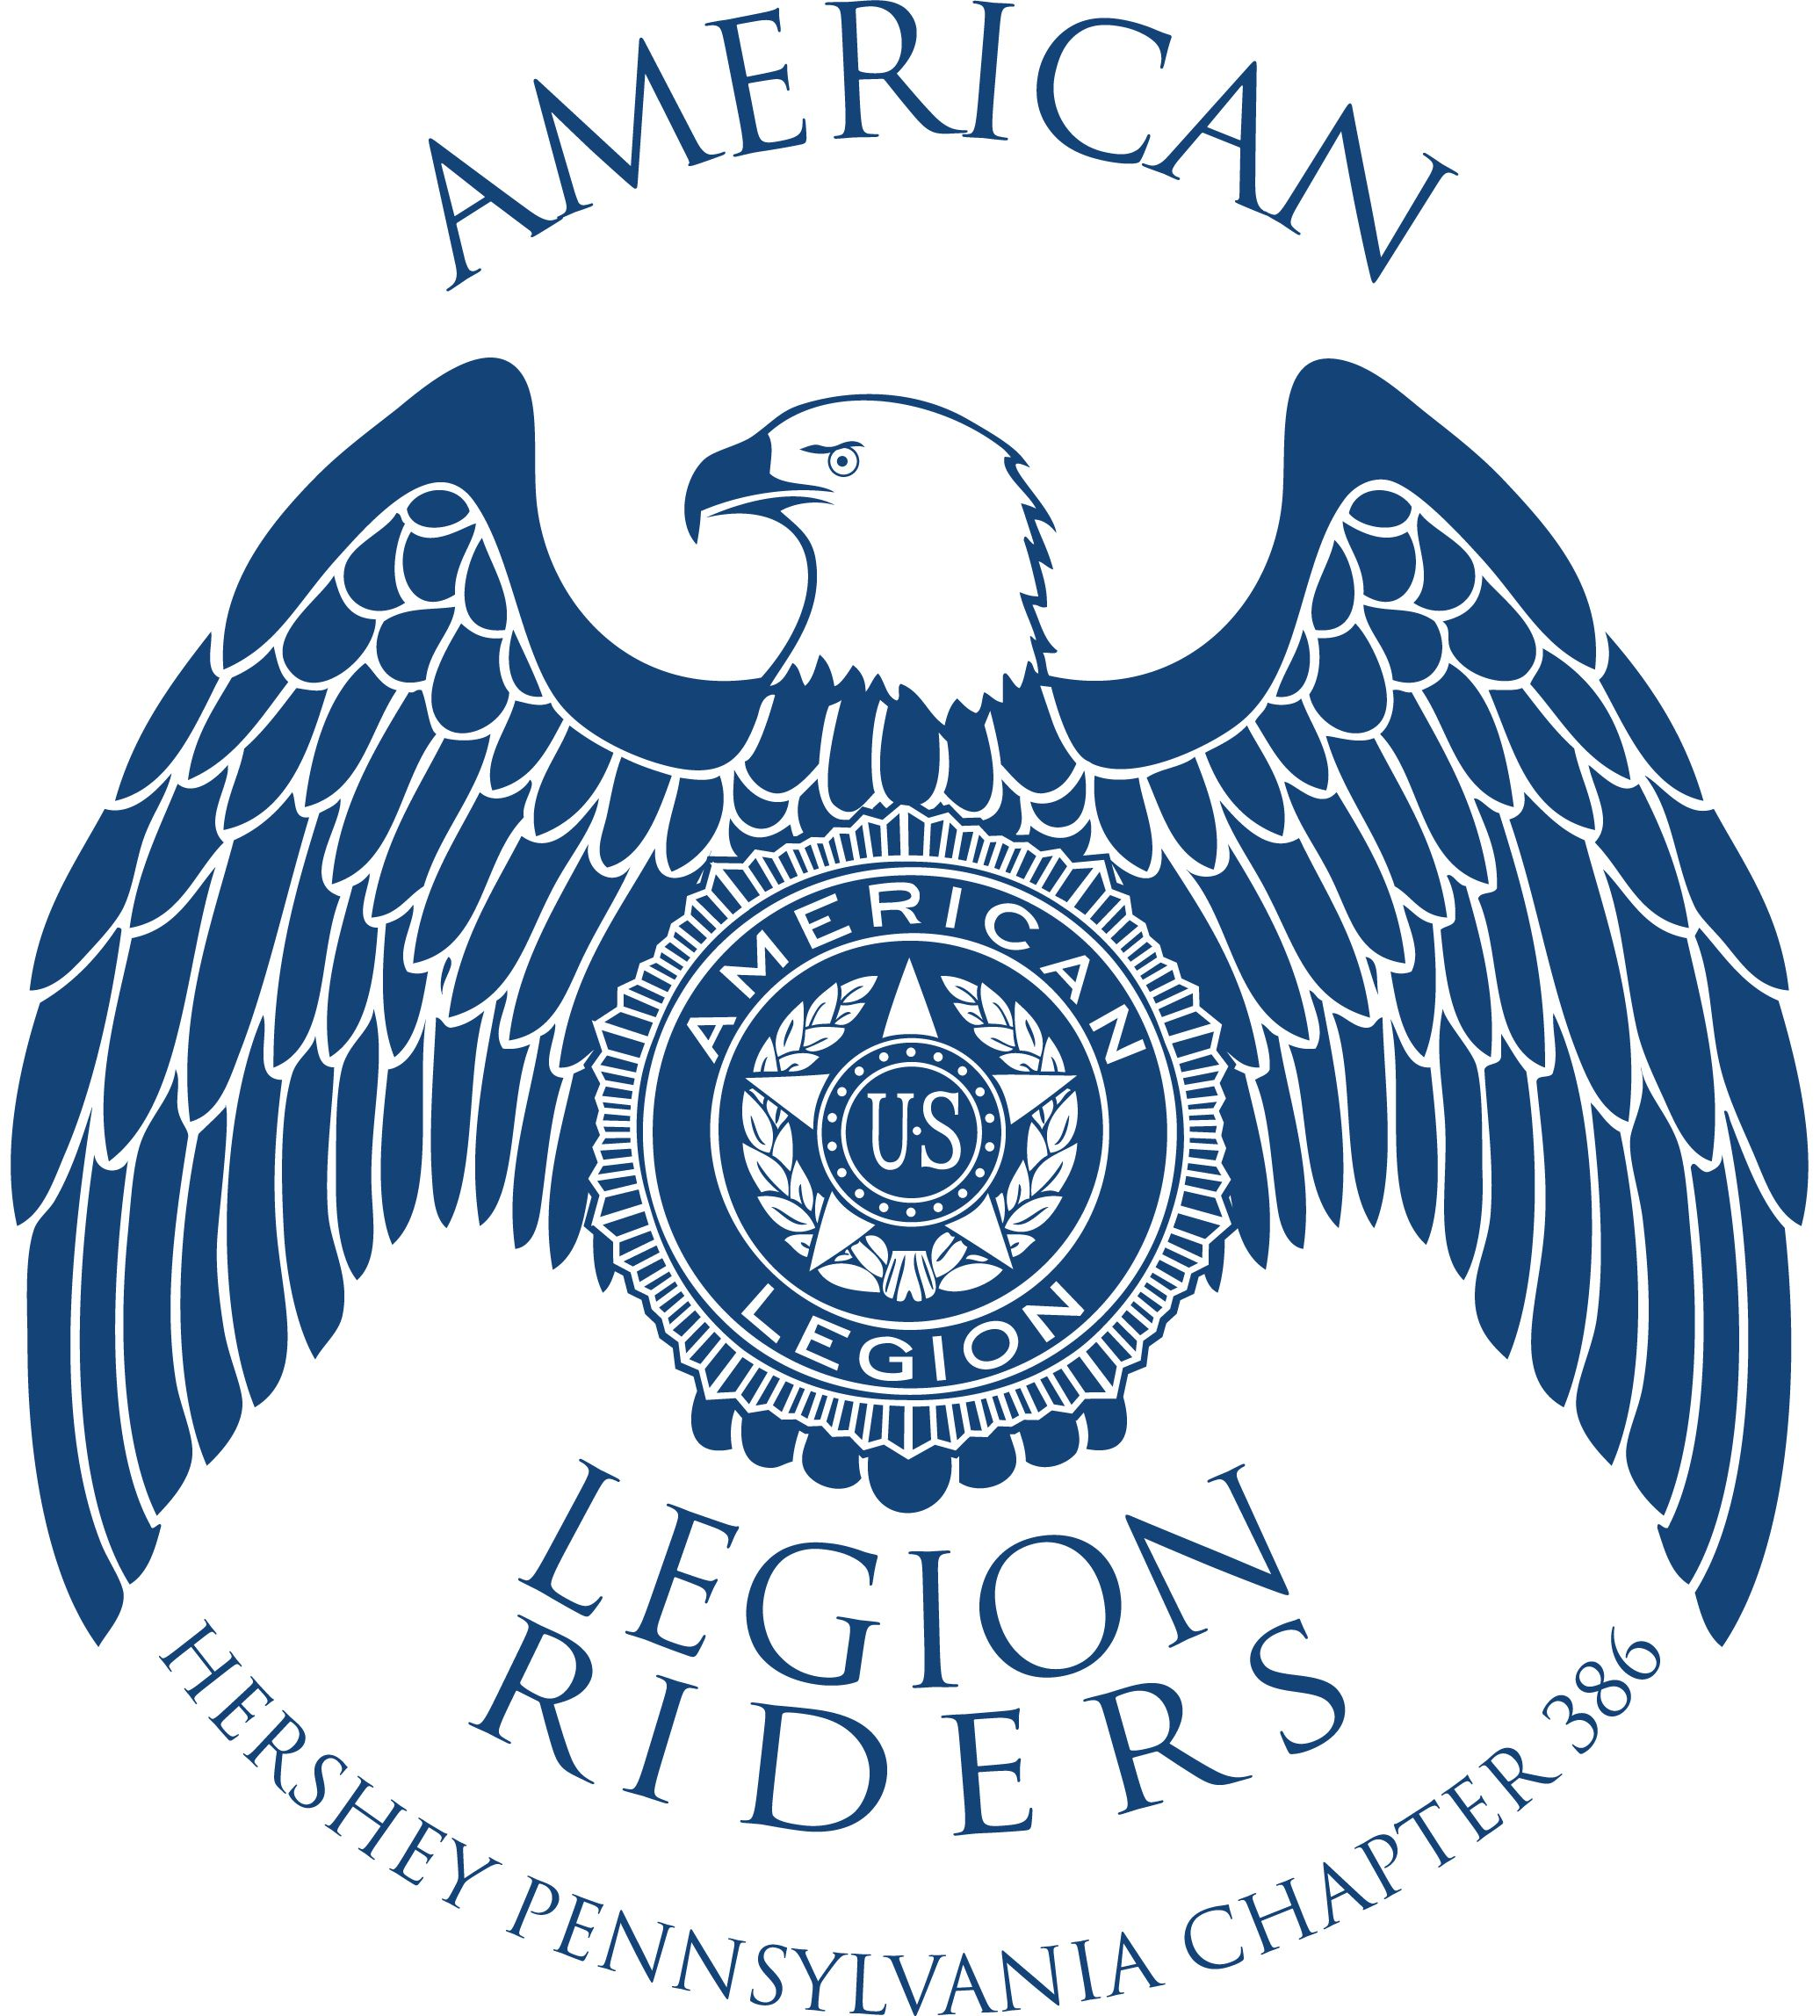 American Legion Riders Hershey Pennsylvania Chapter 386 Logo Vectorized And Ready For Digital American Legion Riders American Legions American Legion Auxiliary